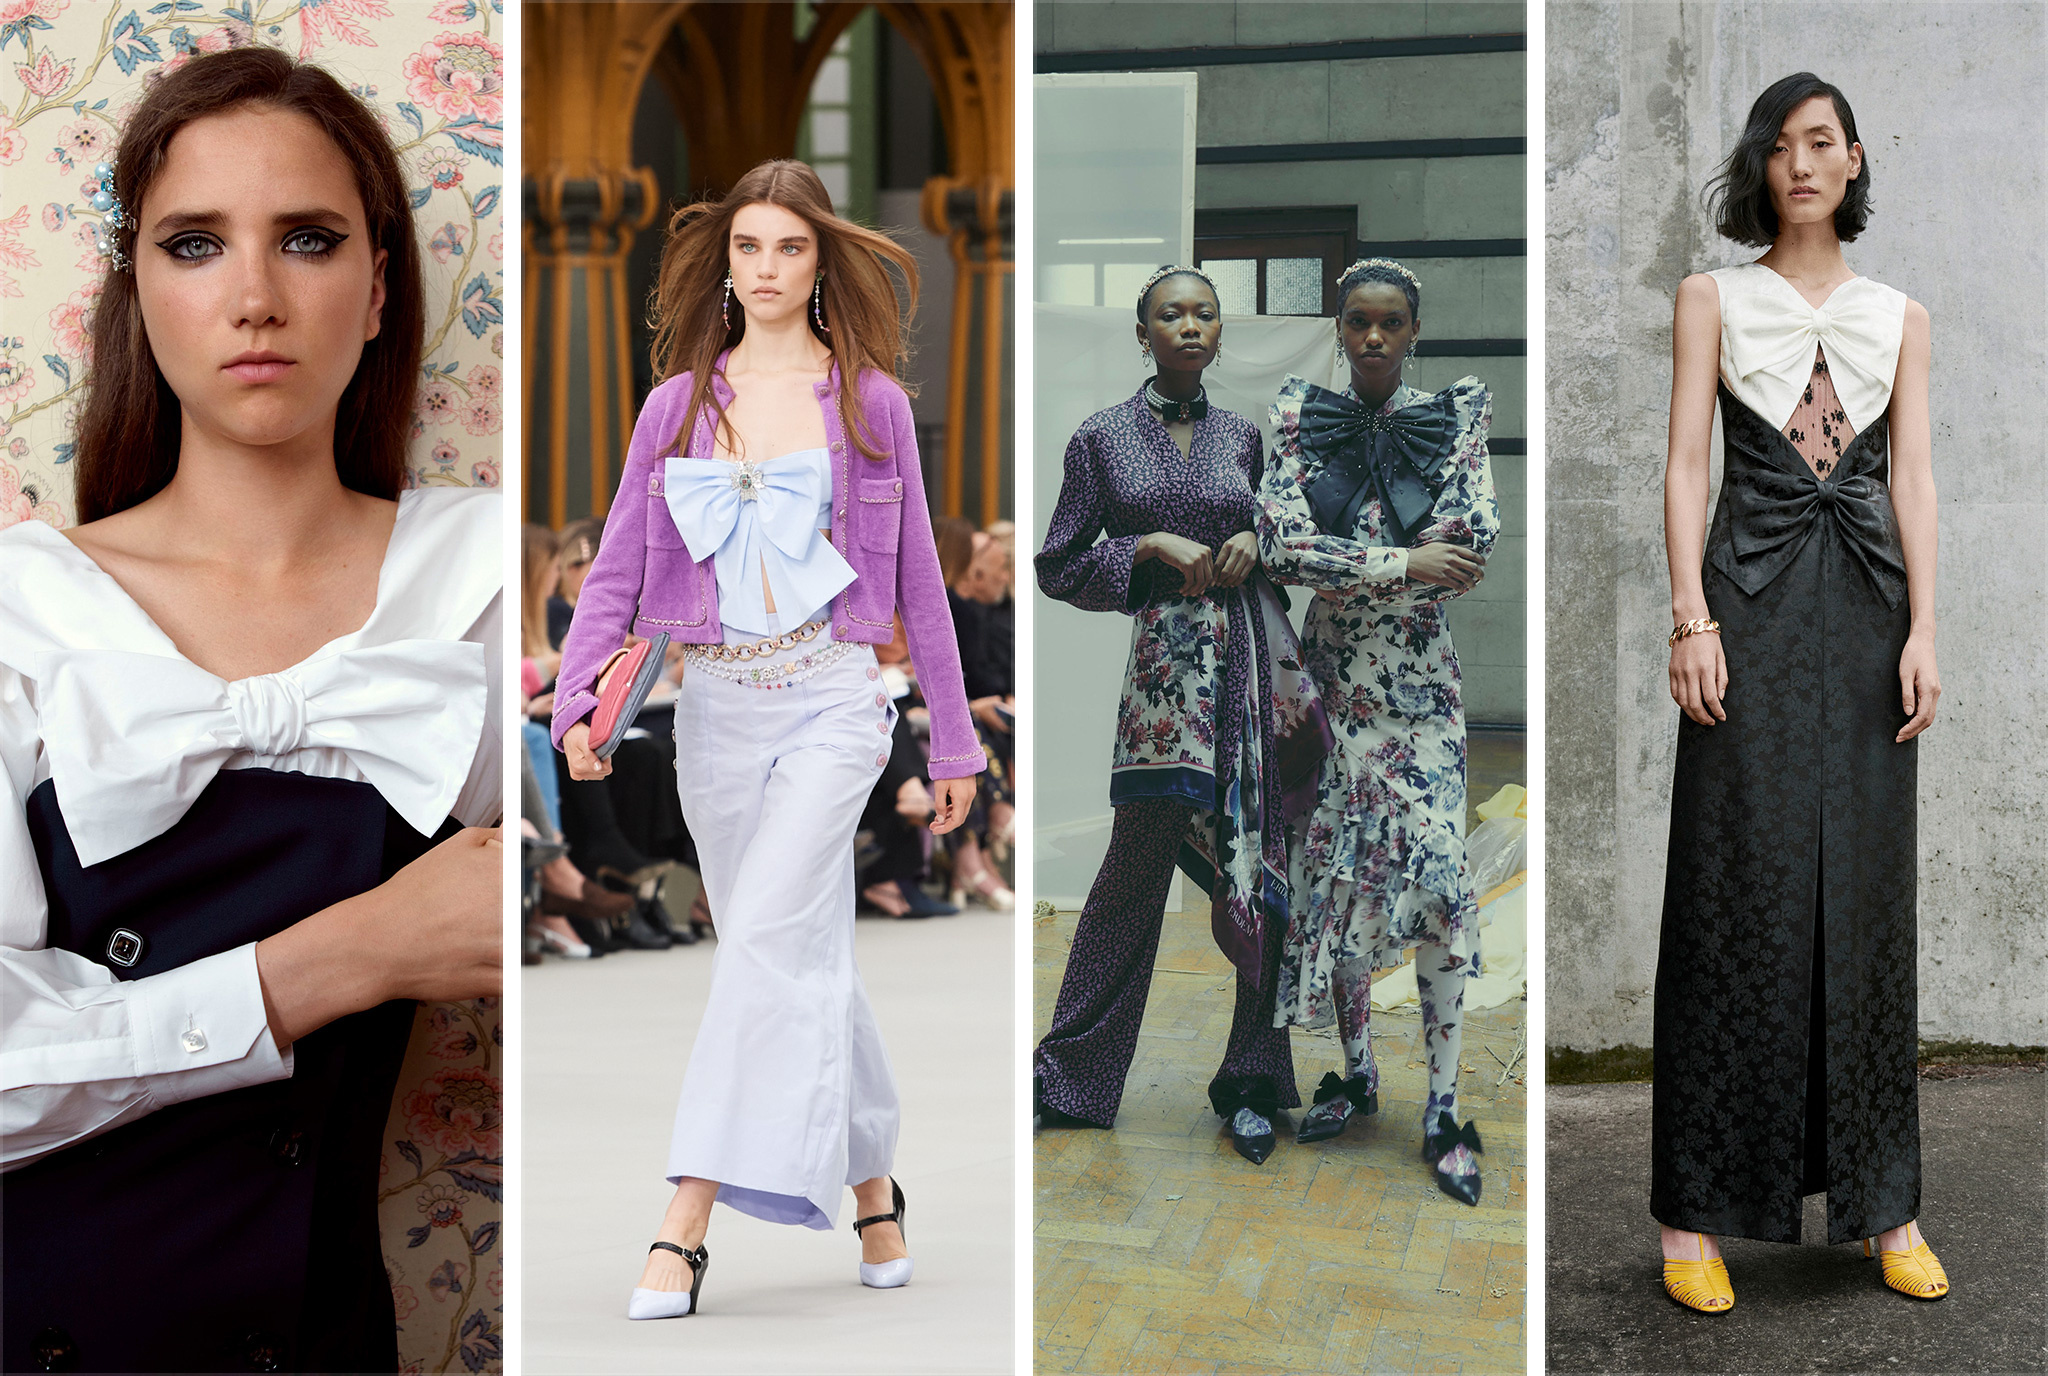 Bows -- built in to every evening look from Chanel and Erdem to Givenchy -- offer girly touches to womanly looks.